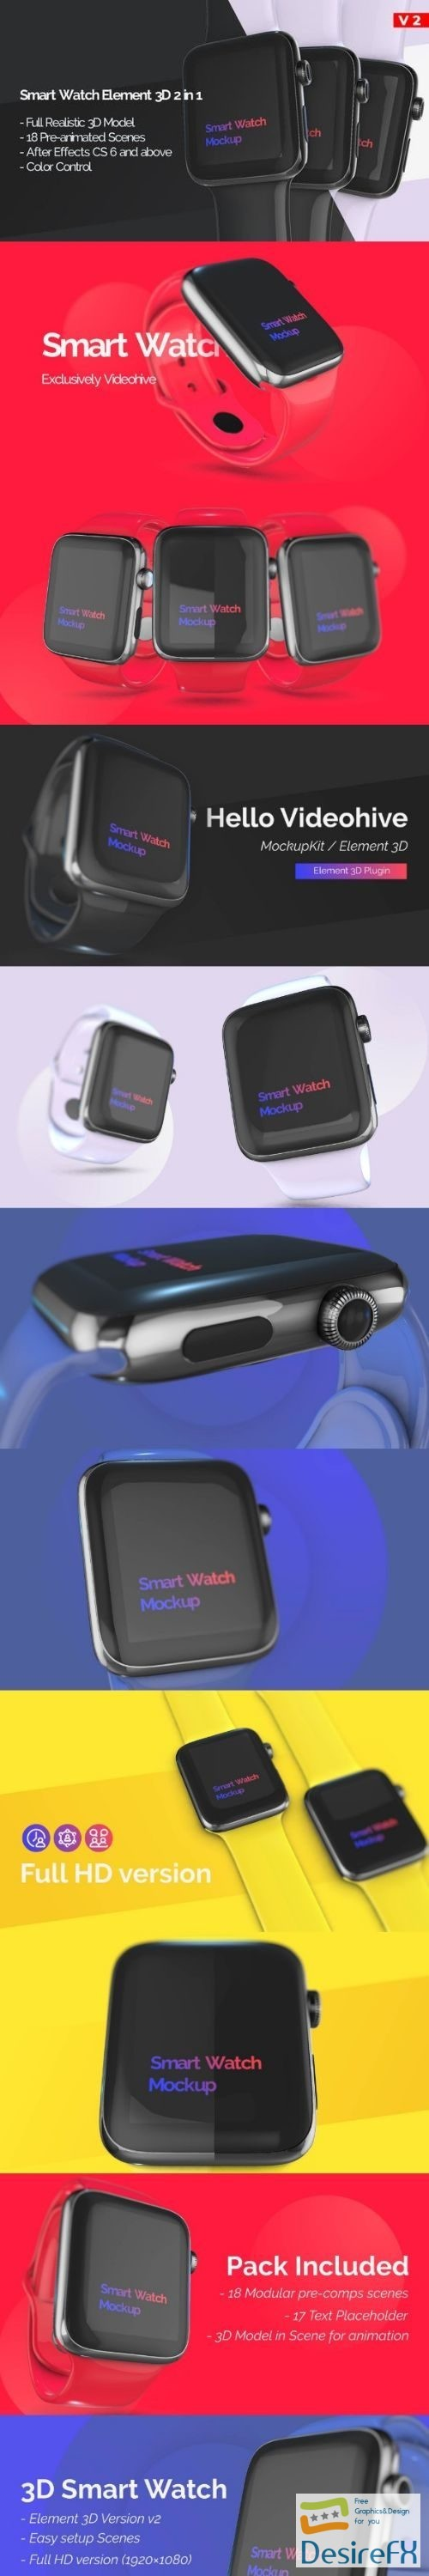 after-effects-projects - Videohive Smart Watch 3D Model Mockup - App Promo 23385934